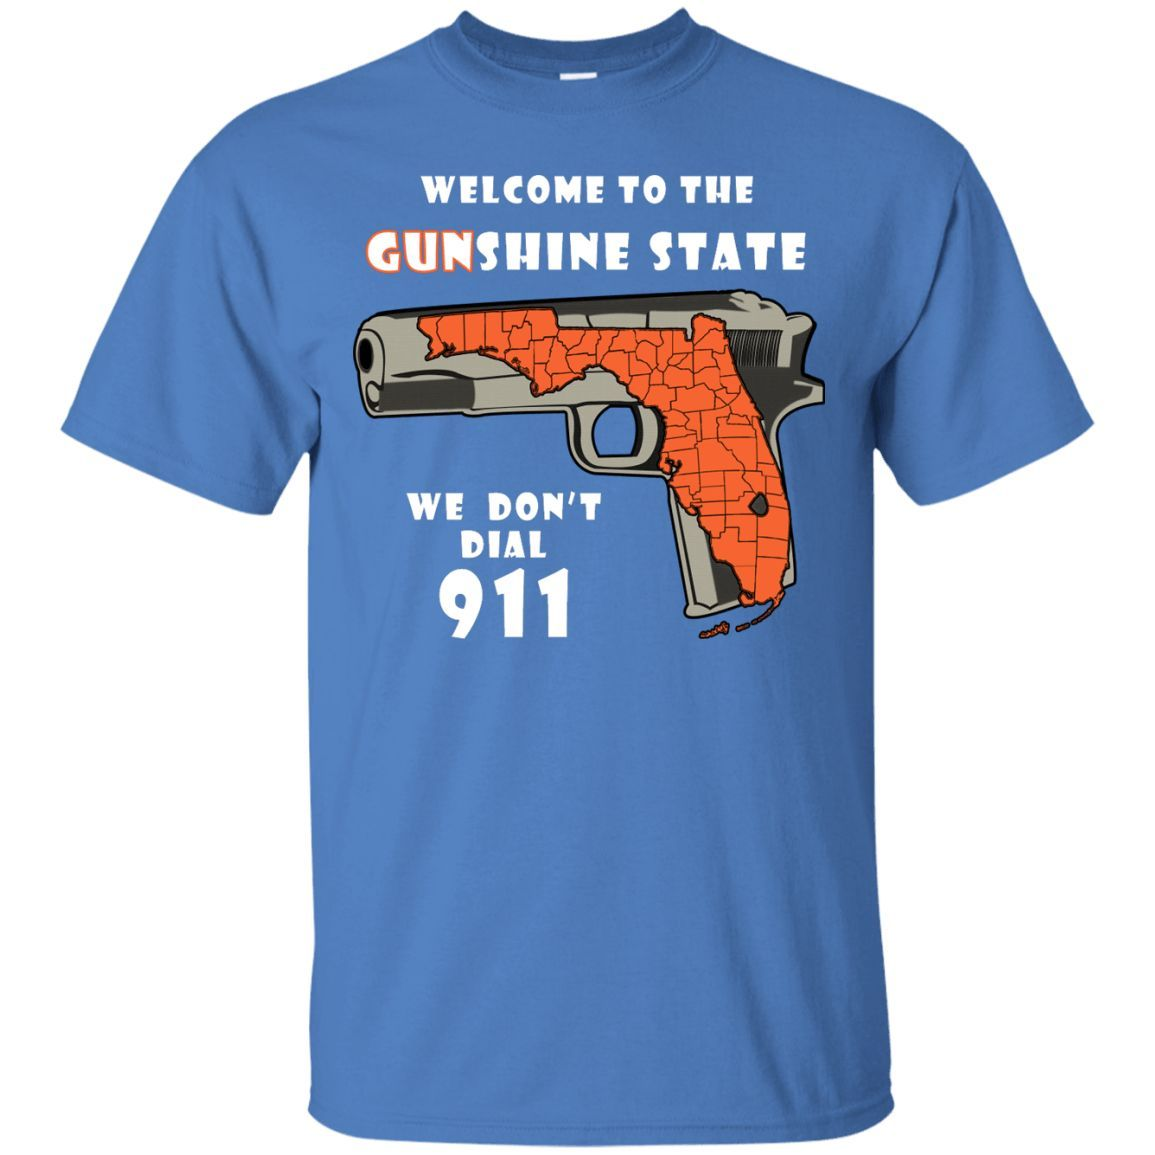 Welcome to the Gunshine State-We Don't Call 911 T-Shirt